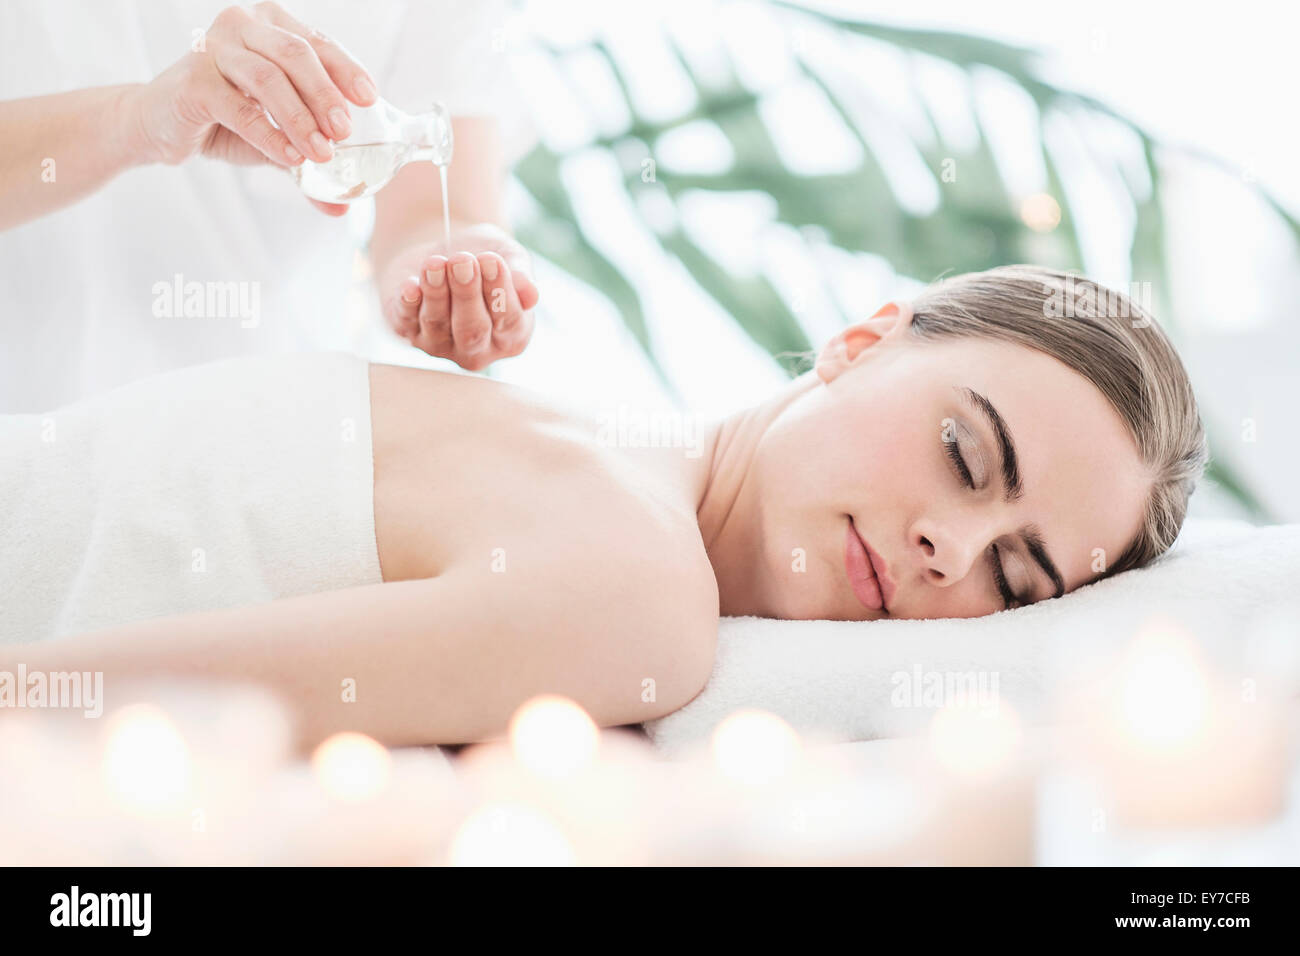 Therapist putting massaging oil on young woman in spa - Stock Image